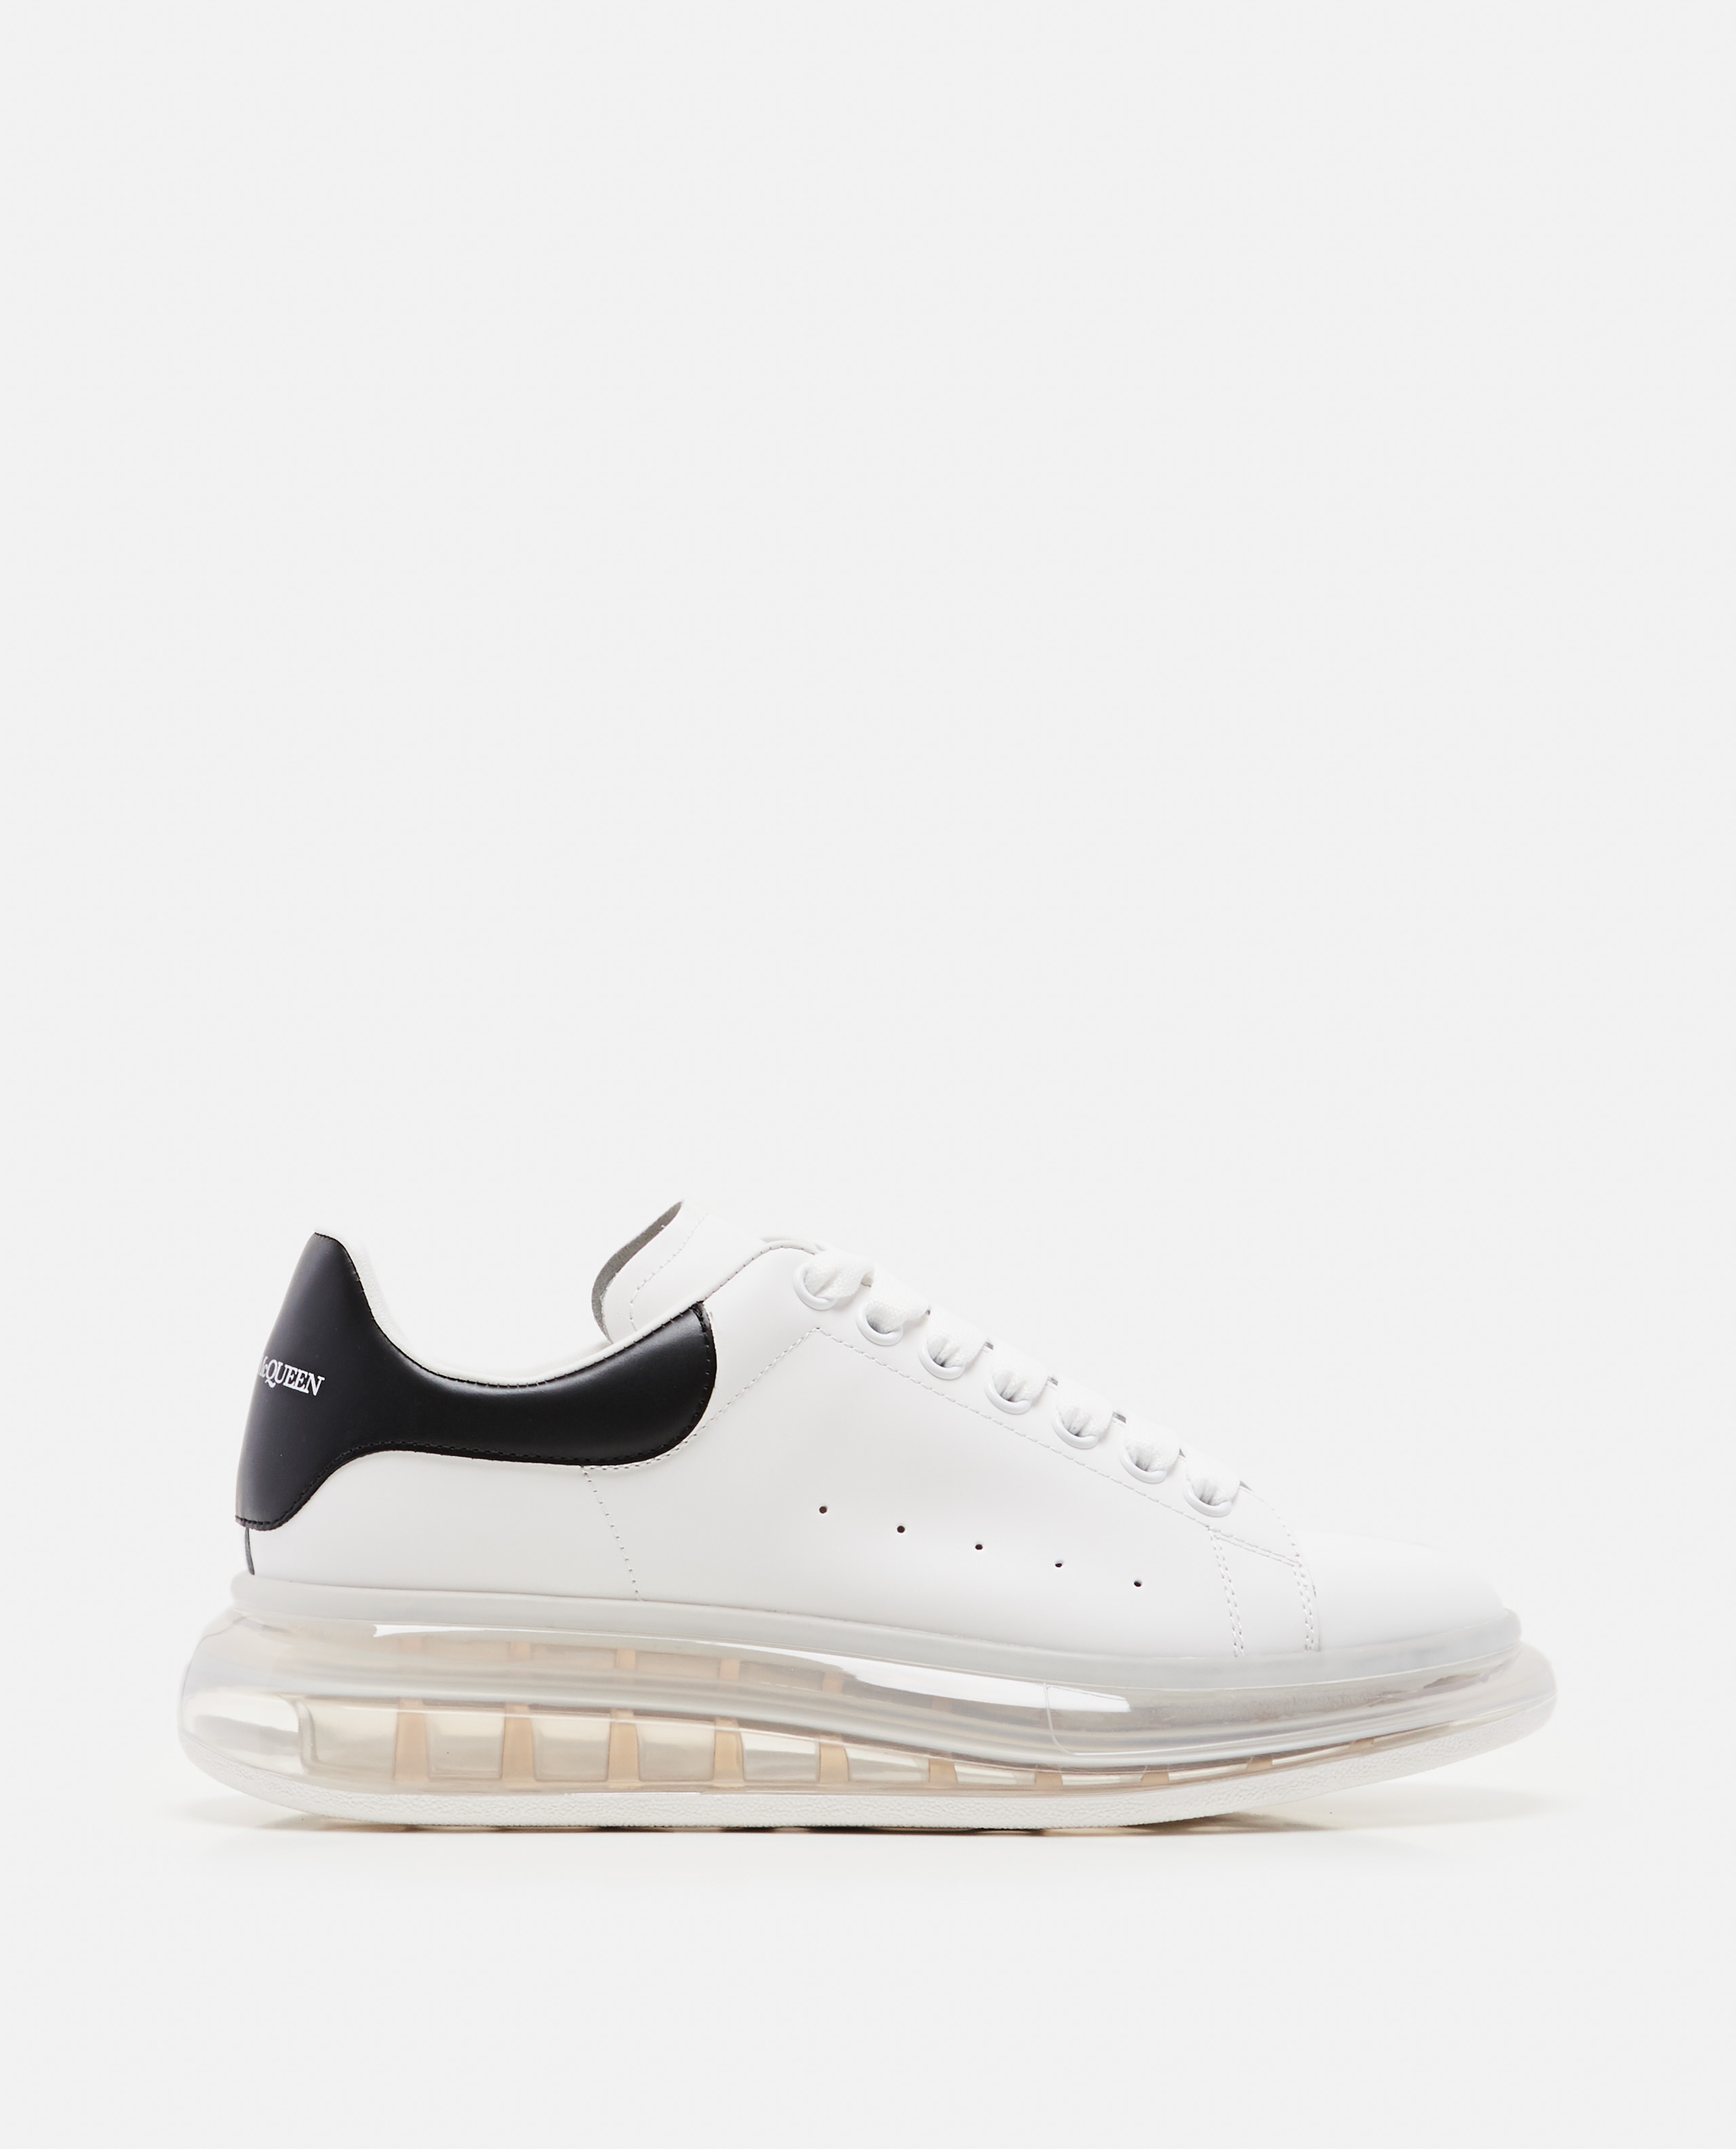 Oversized sneakers with transparent sole